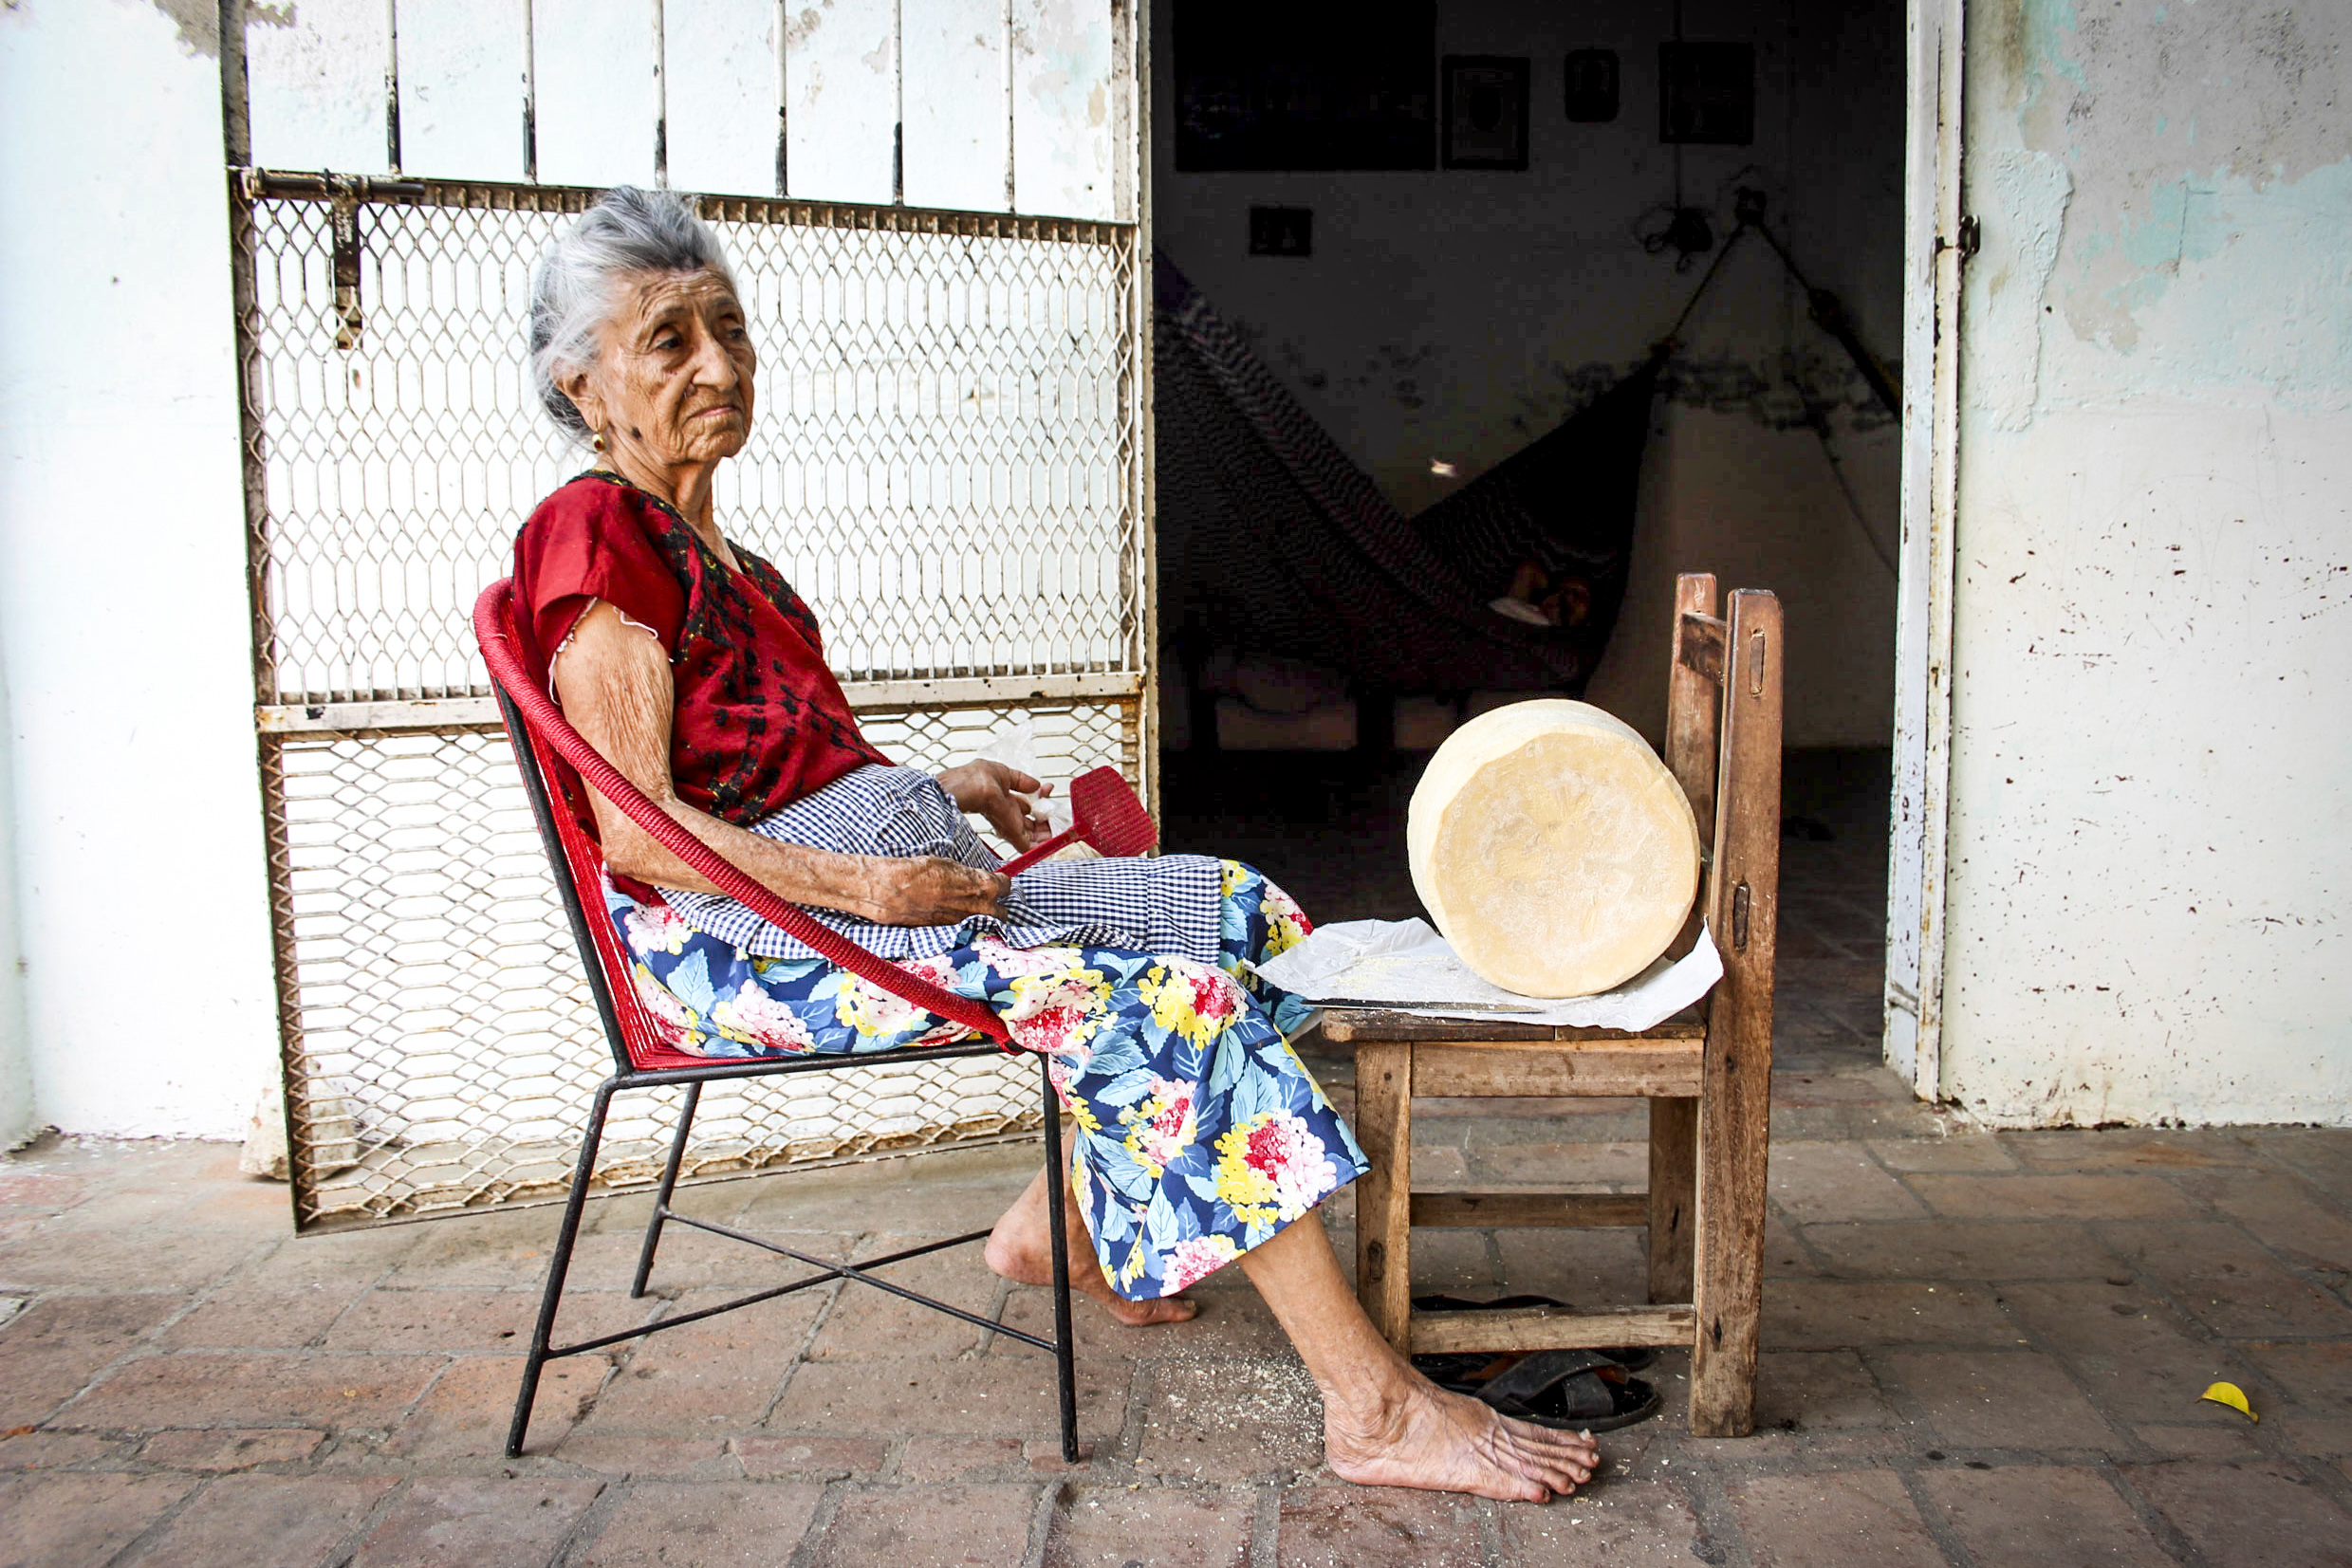 A woman spends the afternoon preparing and swatting flies from her homemade cheese in the small village of Unión Hidalgo, Méxcio. She plans to sell her handcrafted product at the markets the following morning.